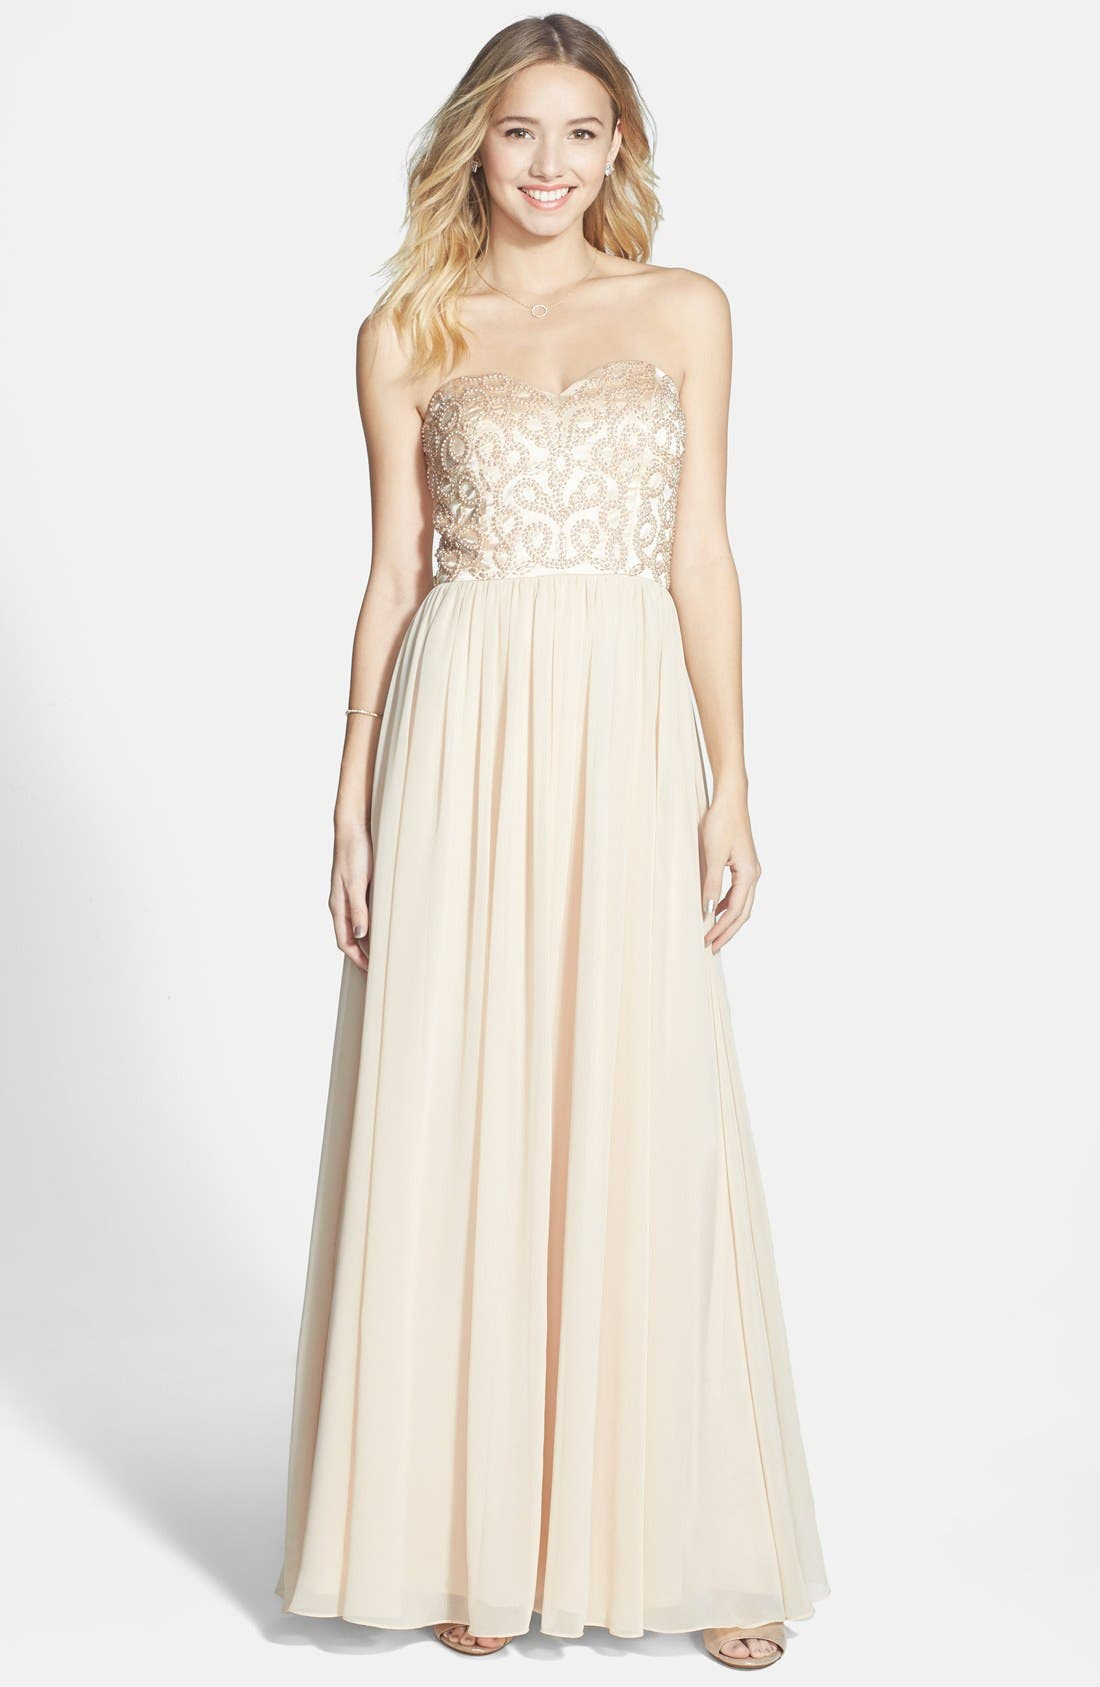 Alternate Image 1 Selected - Xscape Embellished Chiffon Fit & Flare Gown